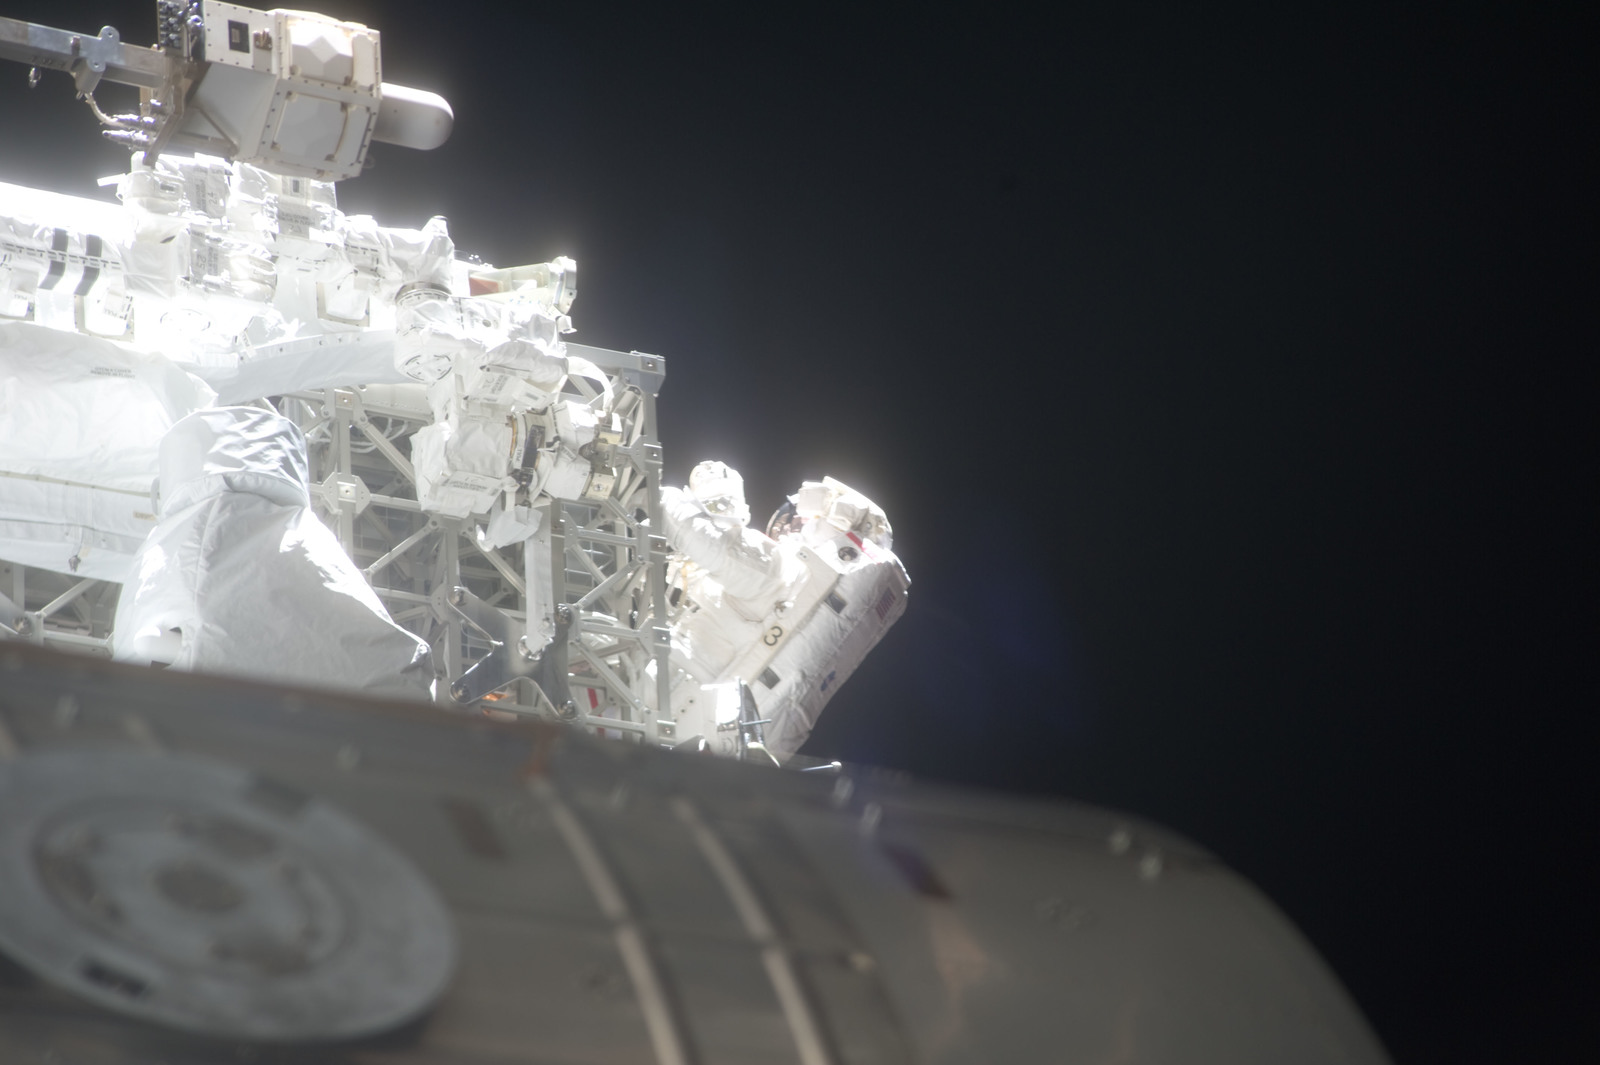 S134E009059 - STS-134 - View of STS-134 MS Feustel during EVA-3